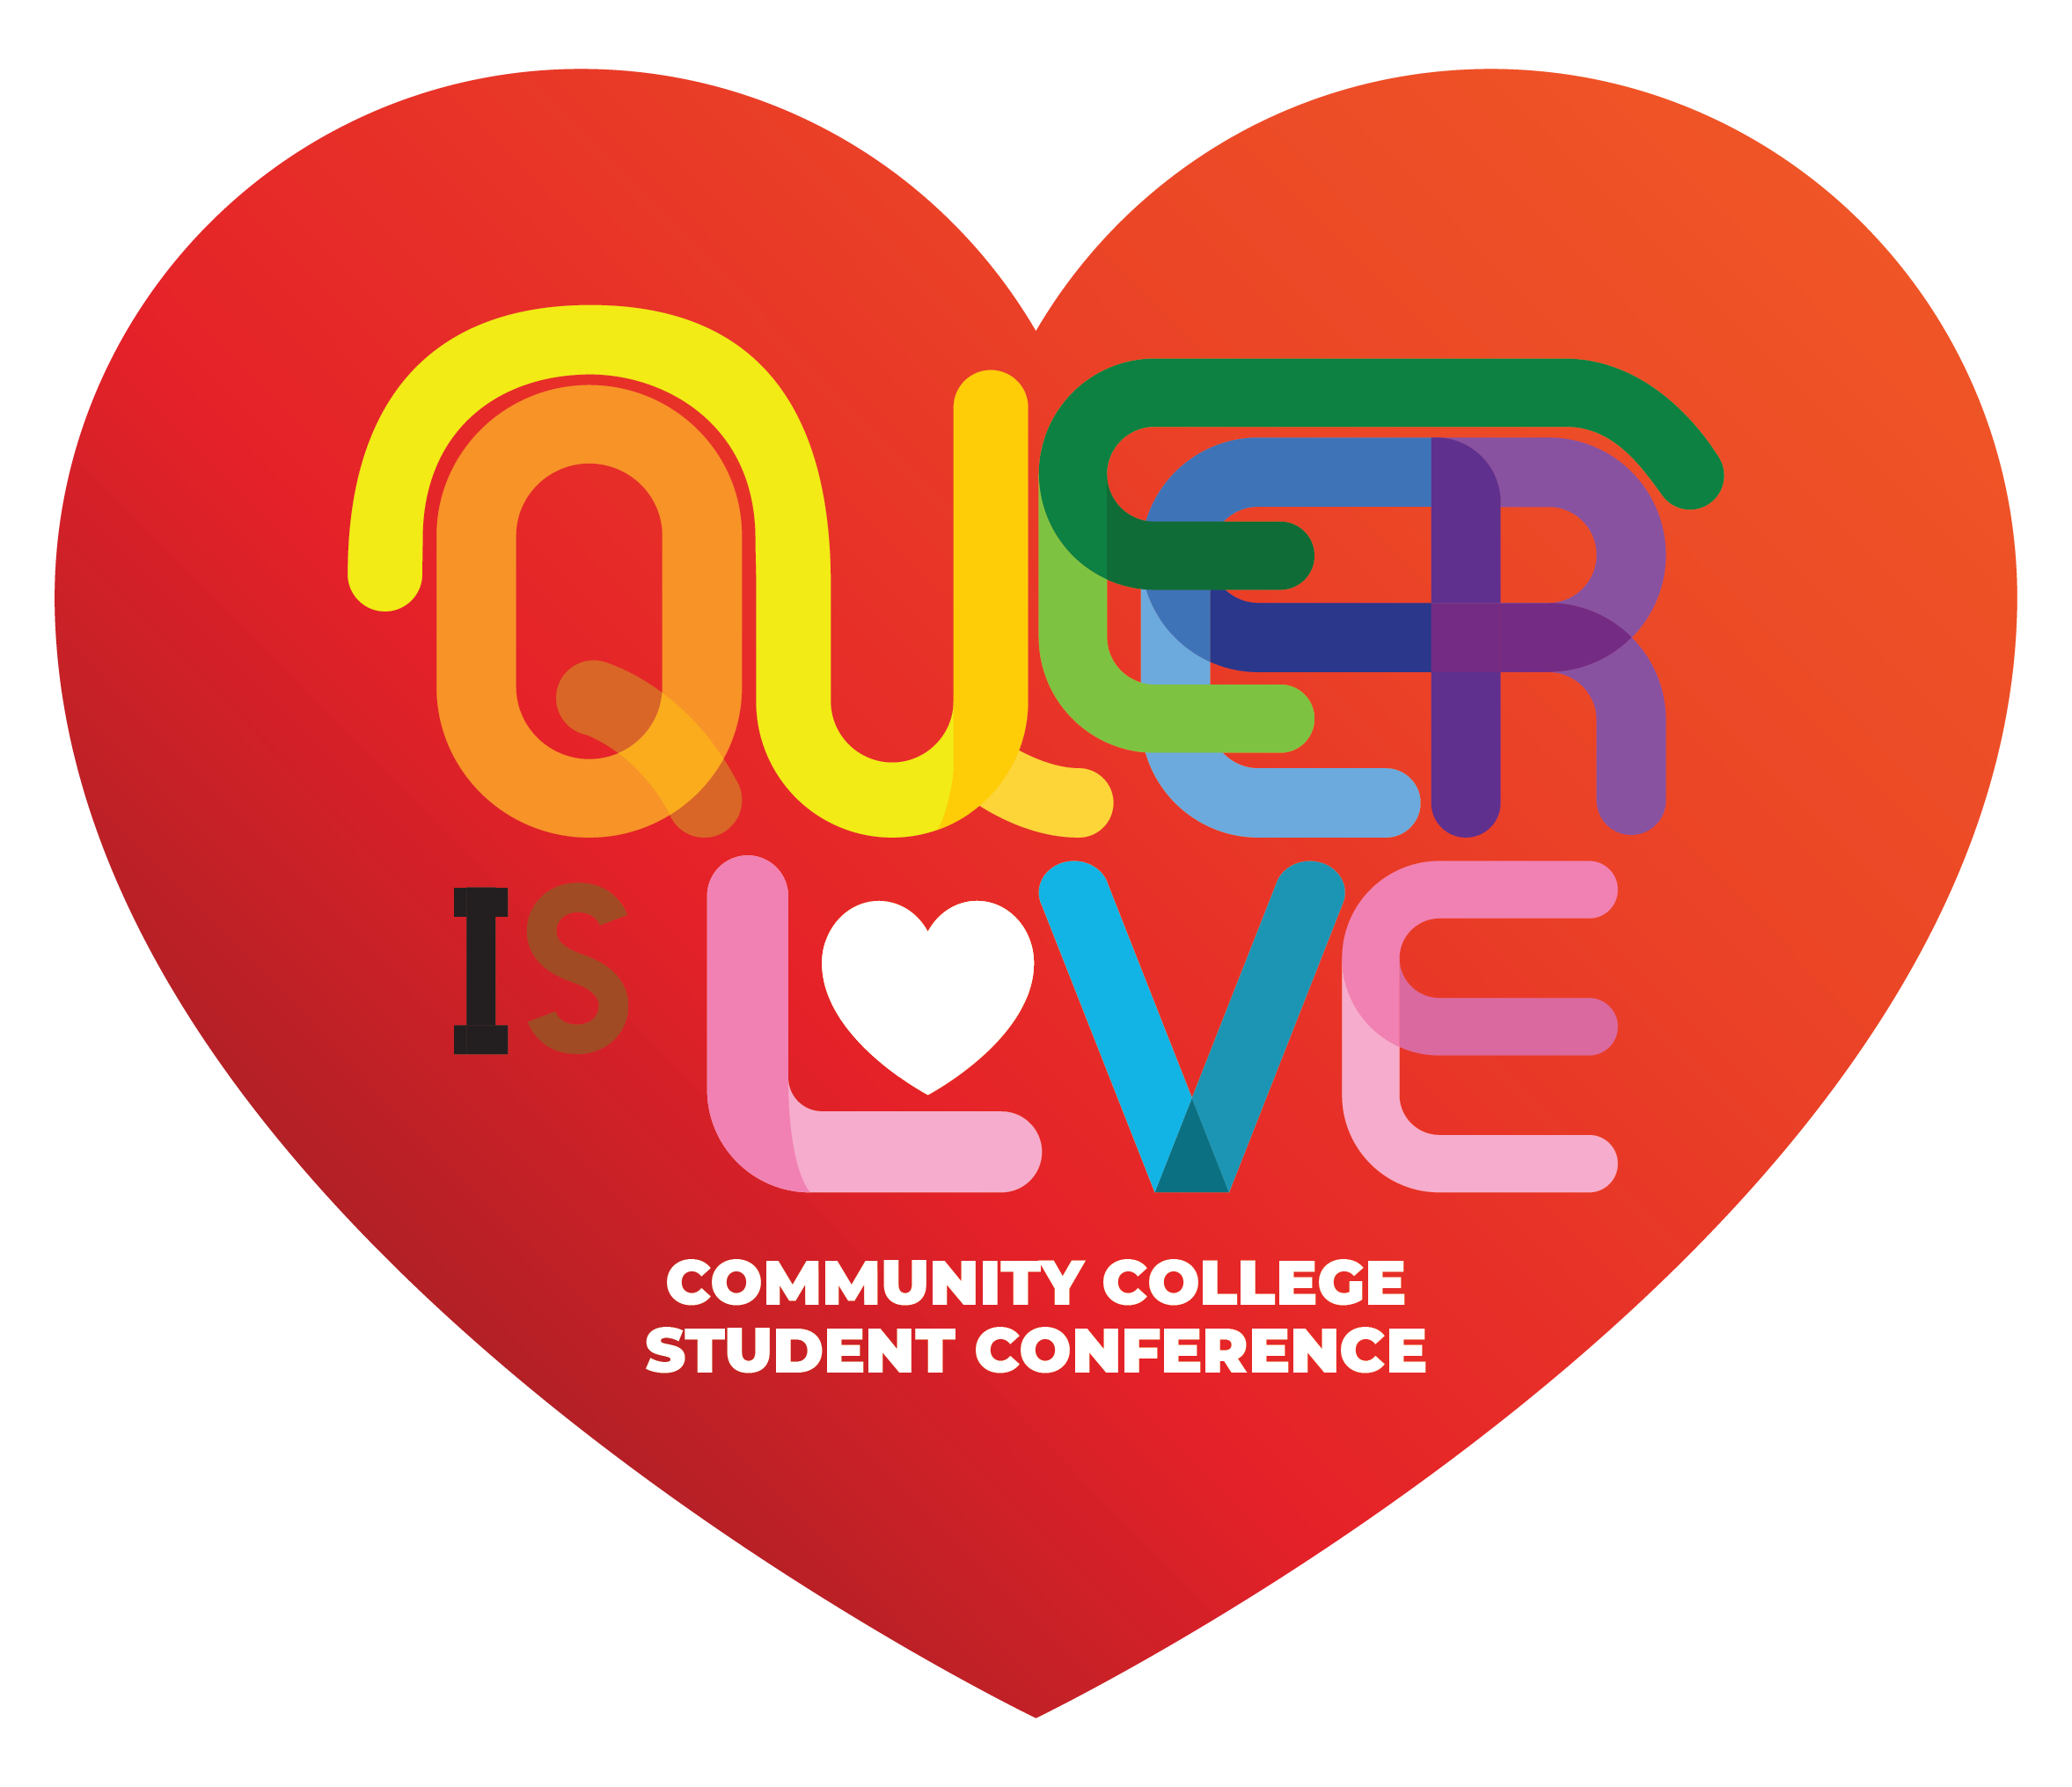 Queer is Love - Community College Student Conference